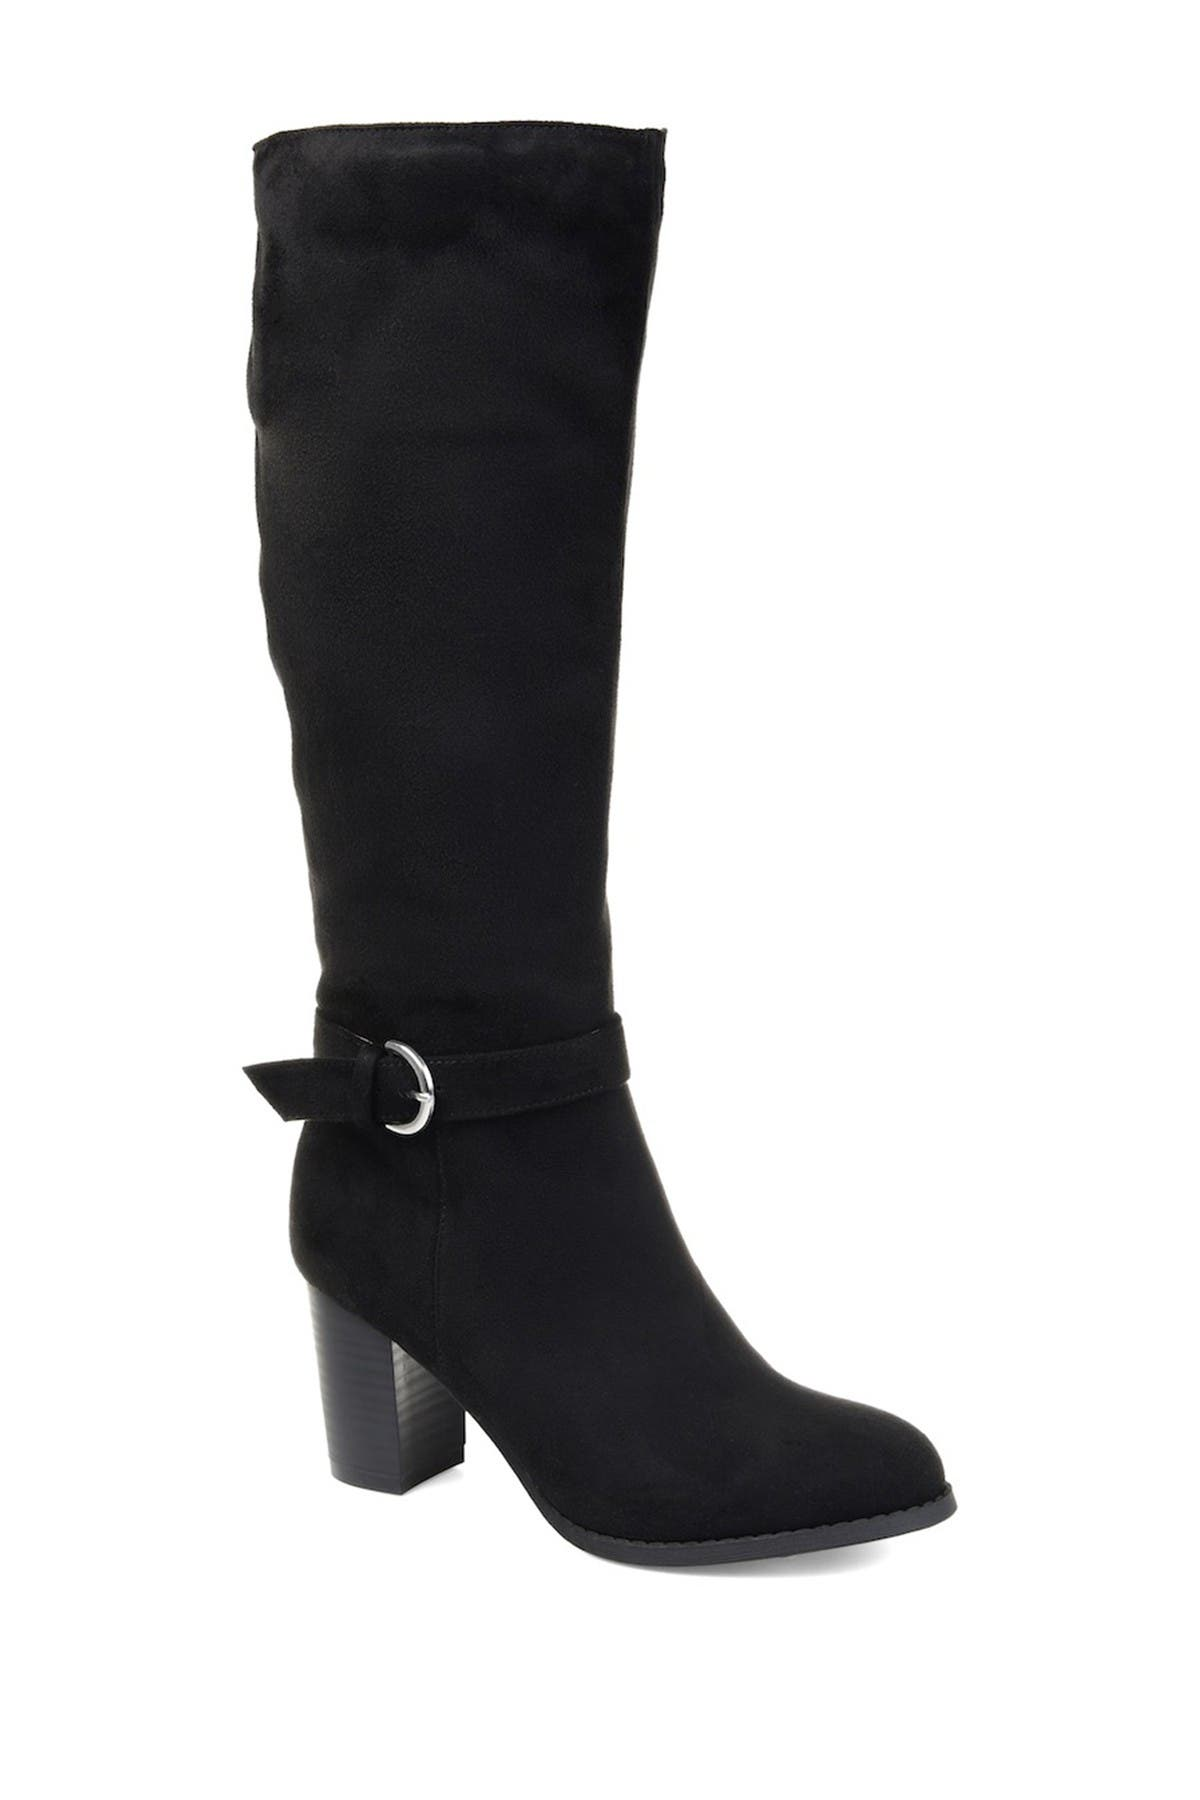 Image of JOURNEE Collection Joelle Boot